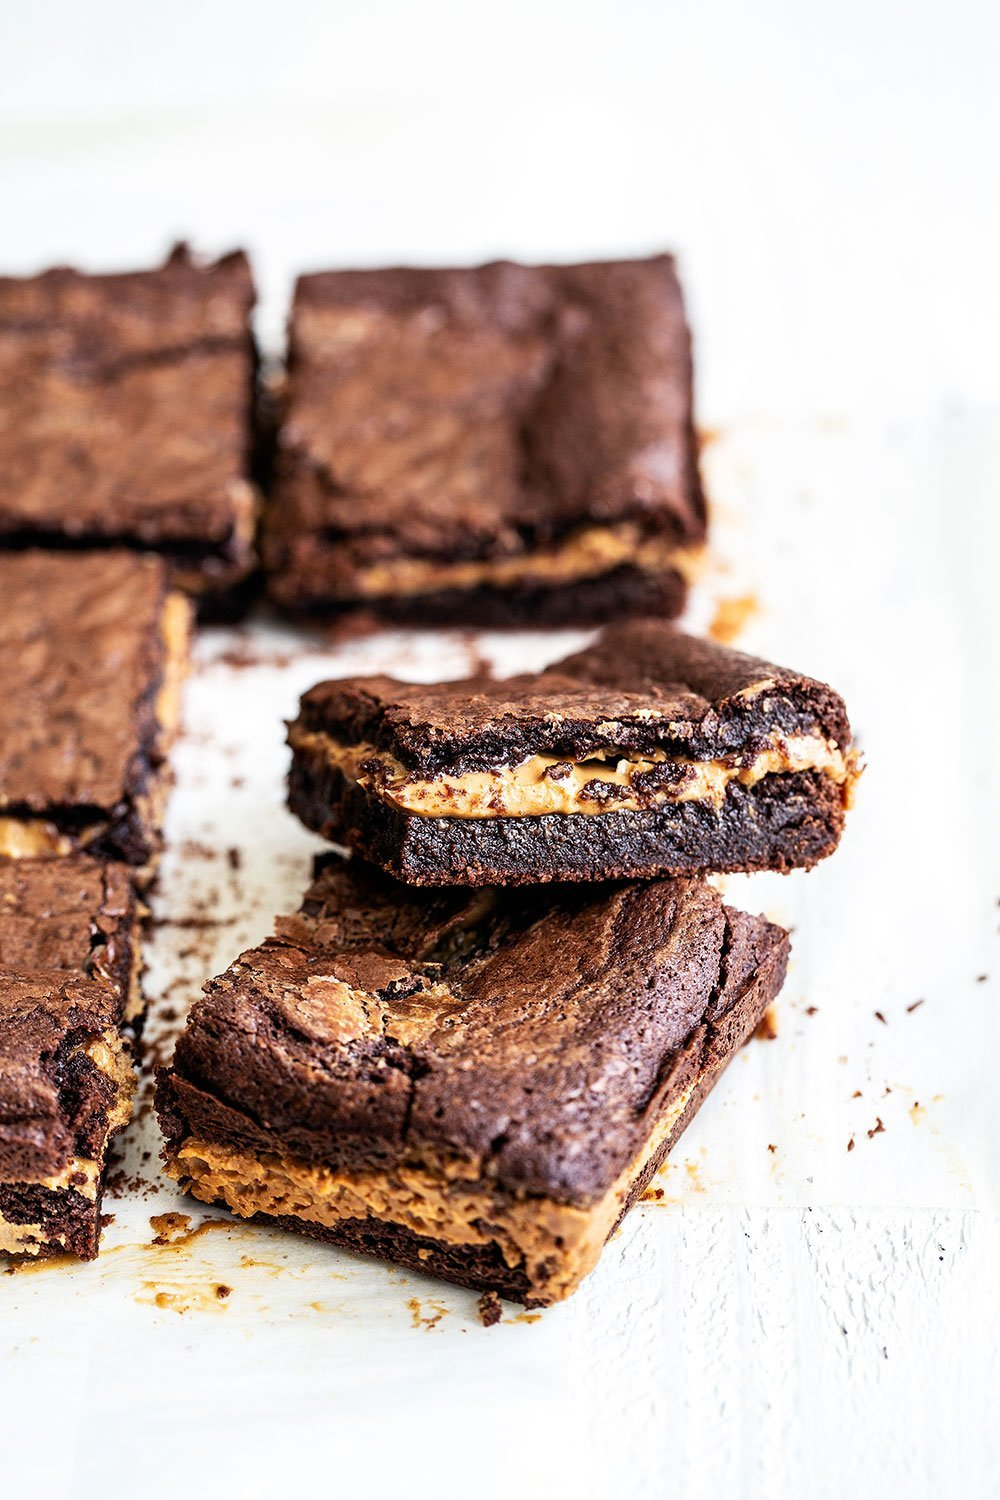 Easy peanut butter filled chocolate brownies cut into squares and stacked on top of each other